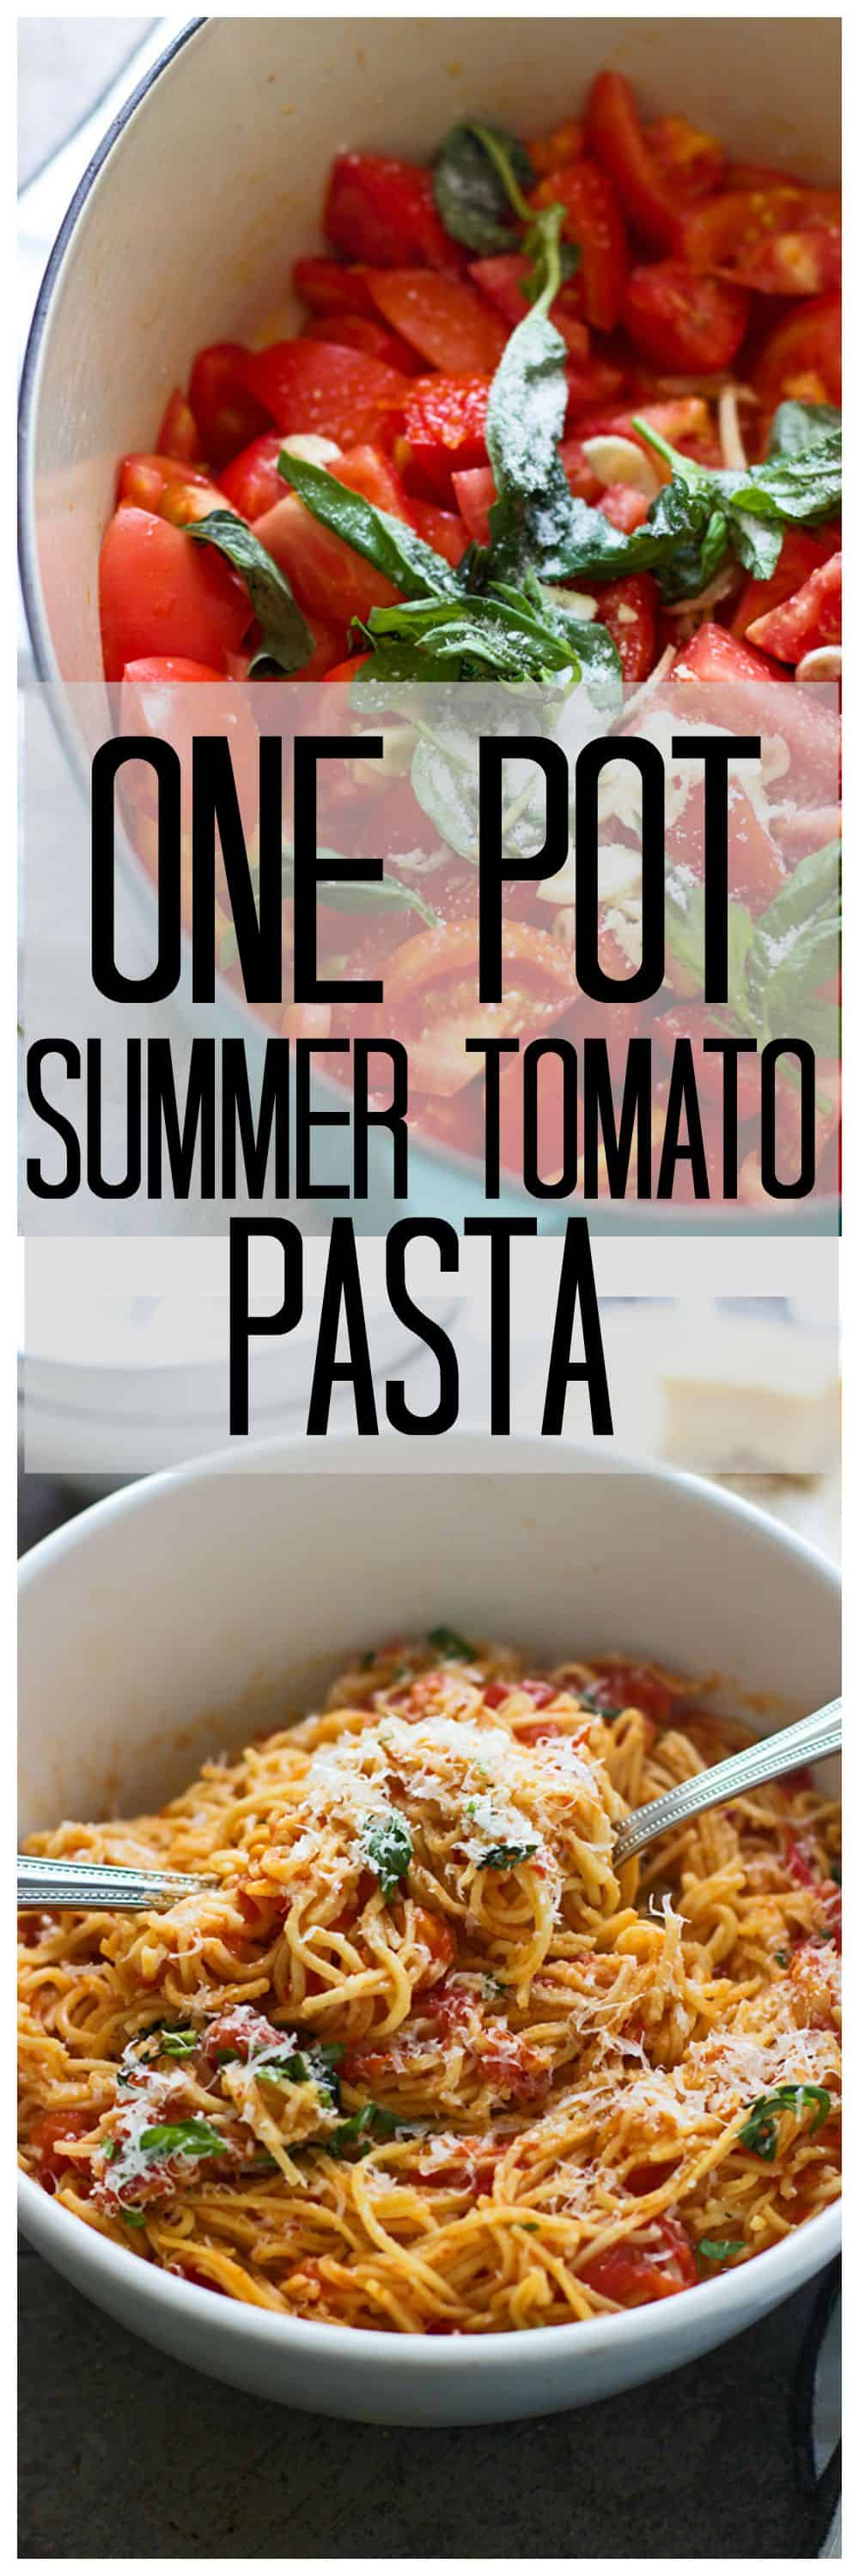 One pot summer tomato pasta